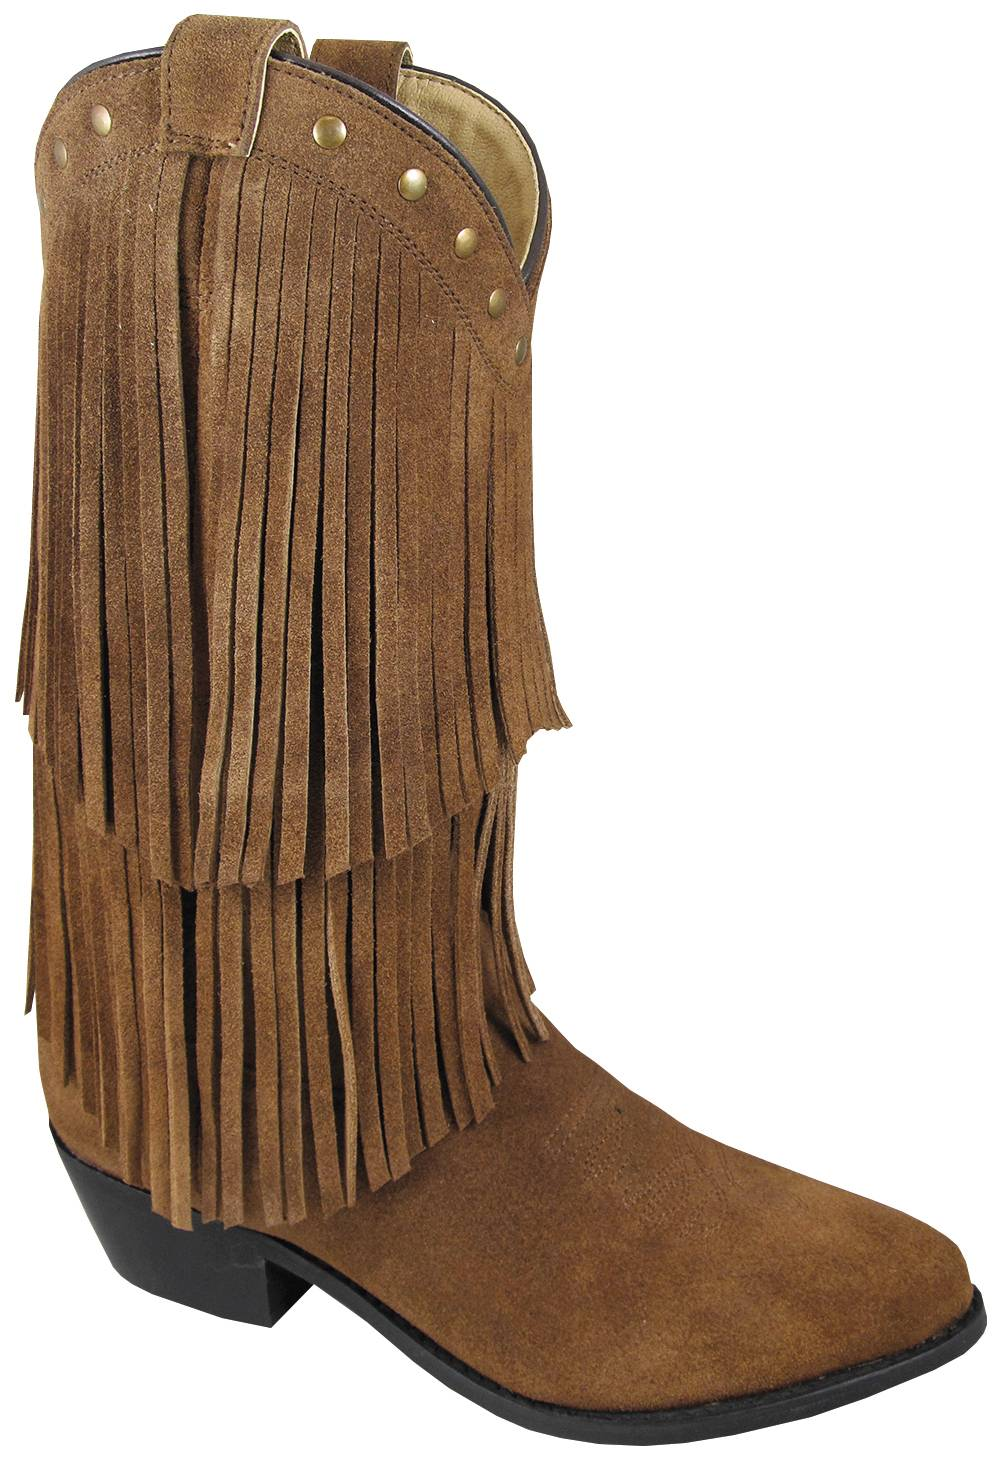 Smoky Mountain Womens Wisteria Double Fringe Leather Boots - Brown